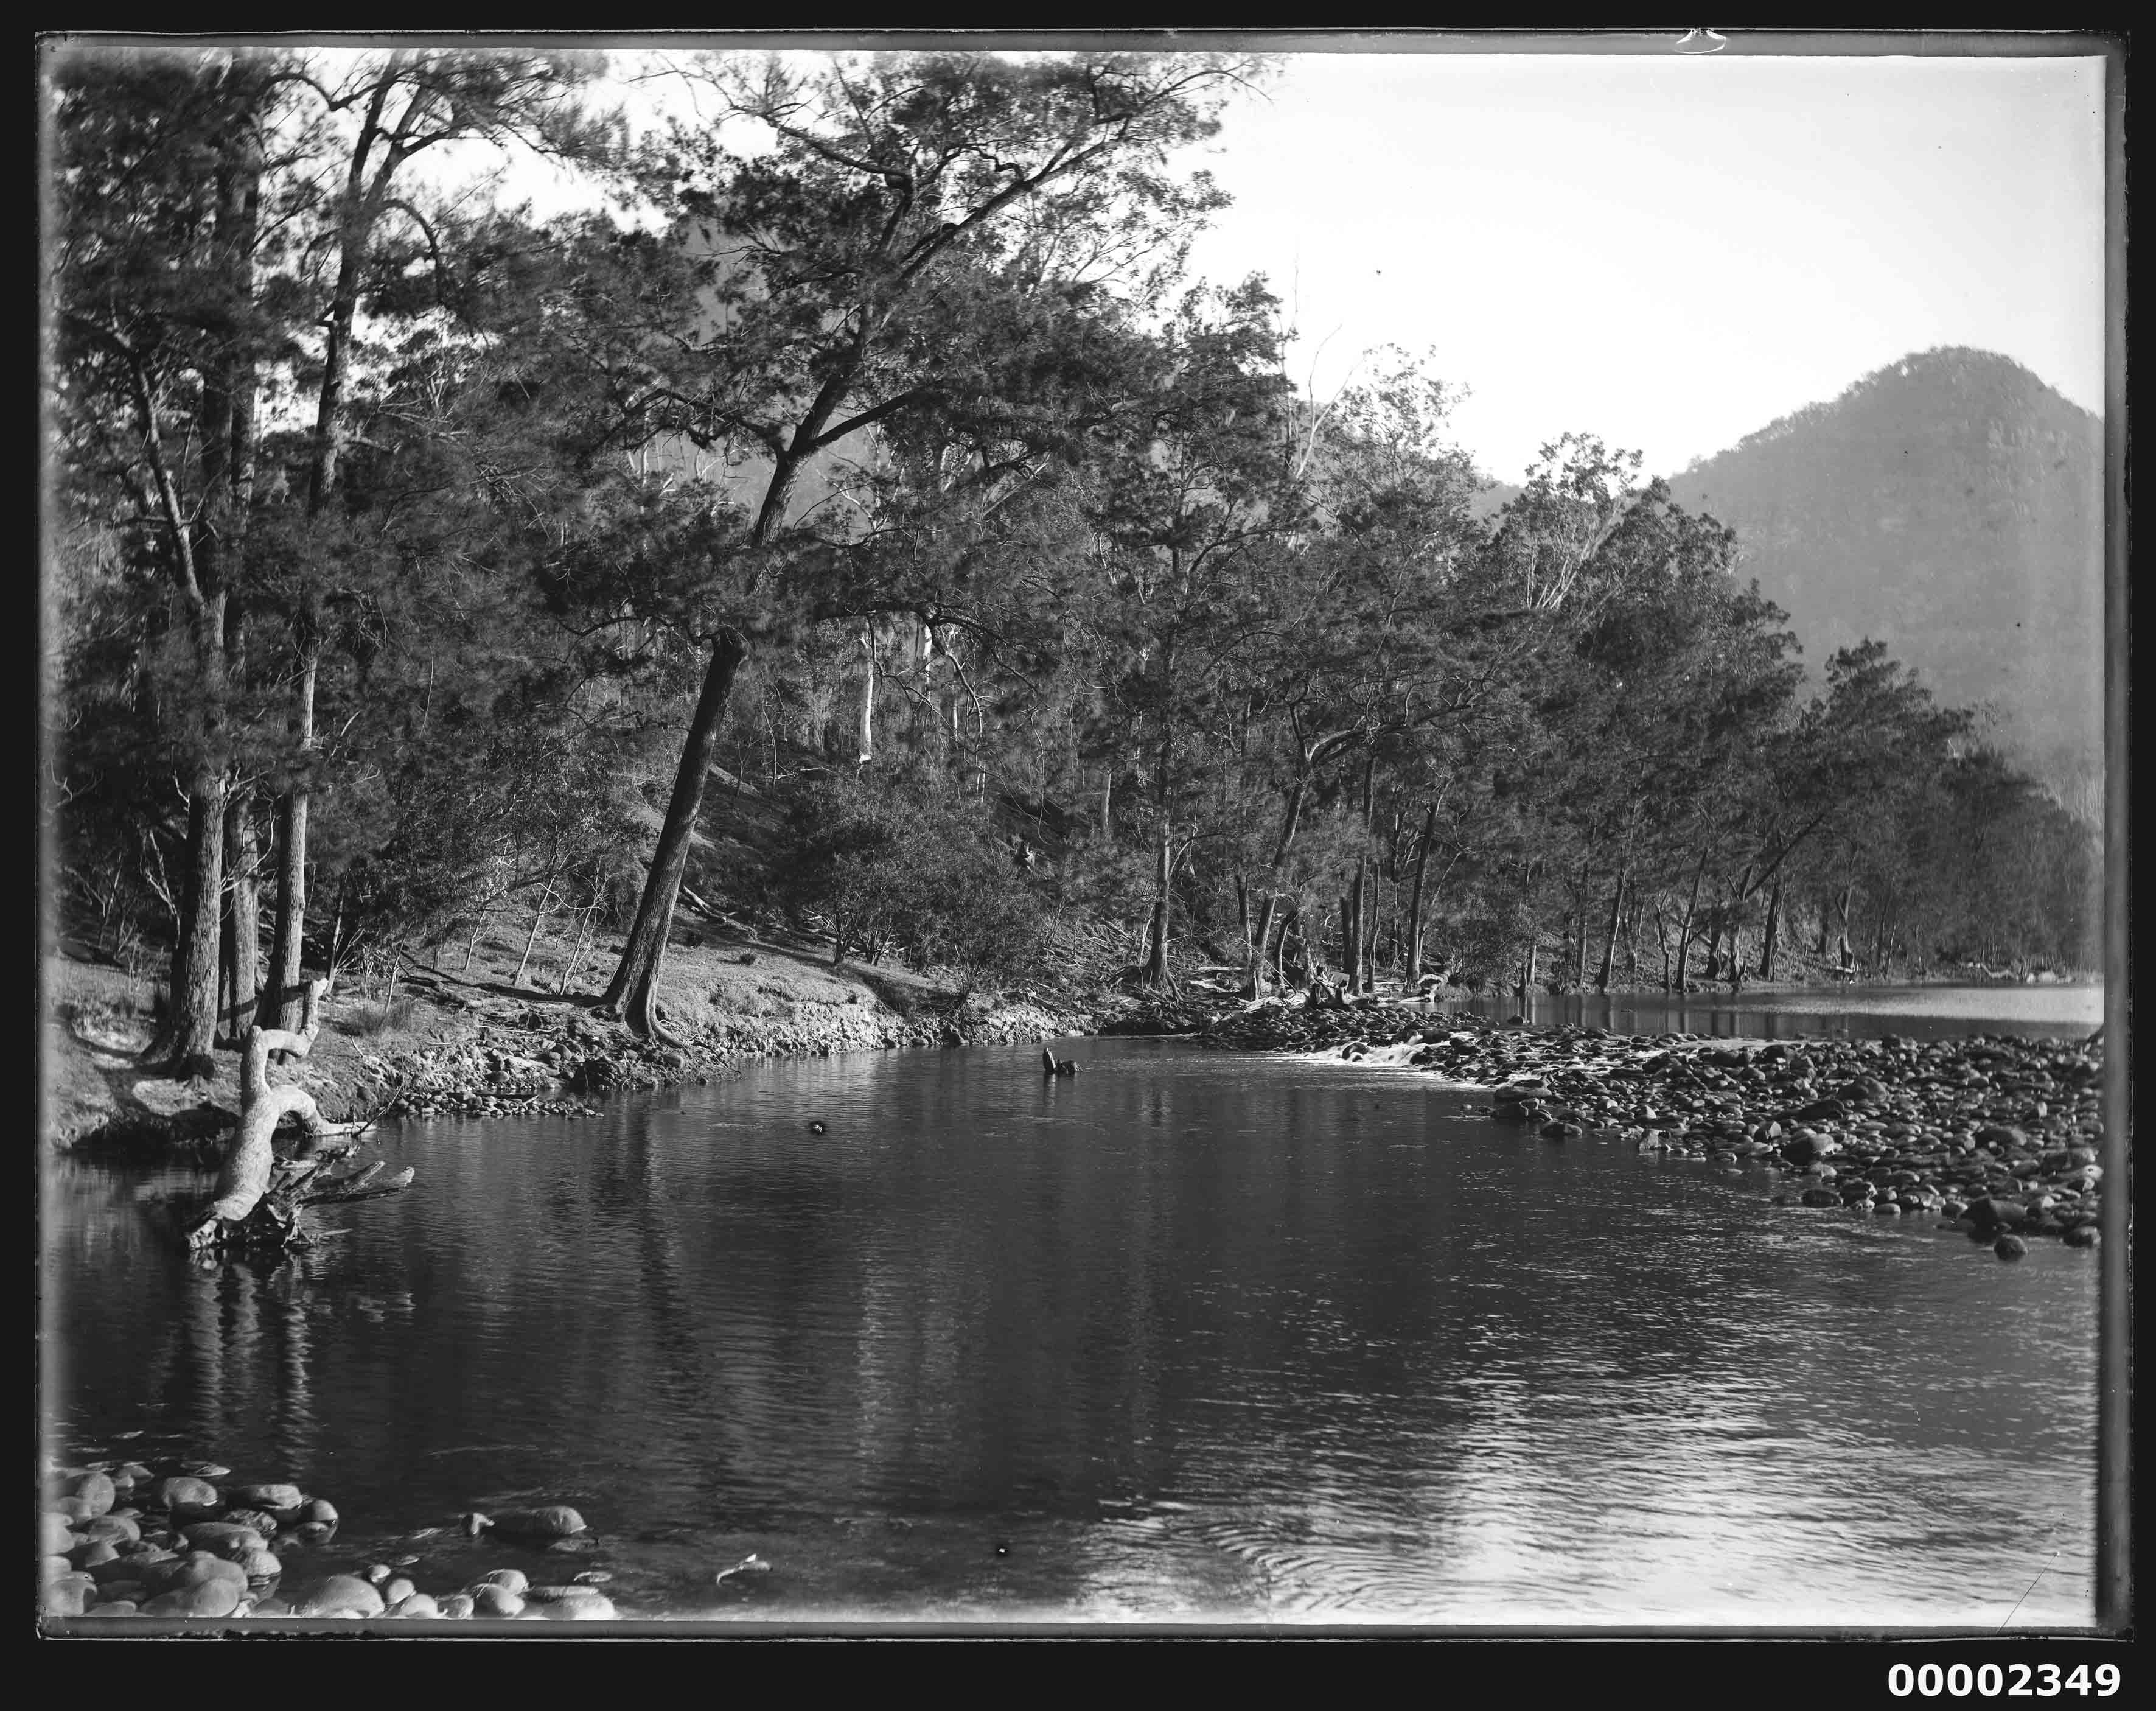 Riverscape, possibly the Hawkesbury River, NSW, 1880-1909